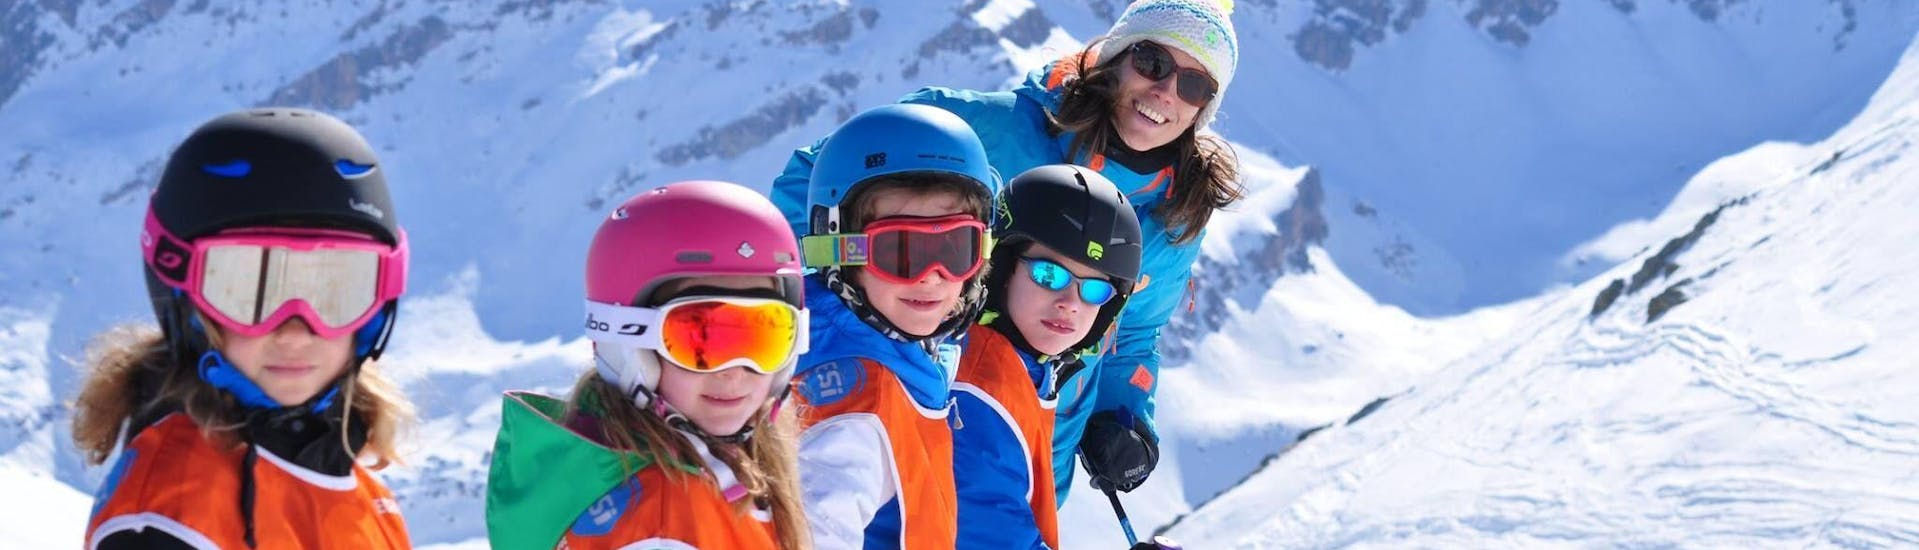 kids-ski-lessons-5-12-years-esi-generation-hero